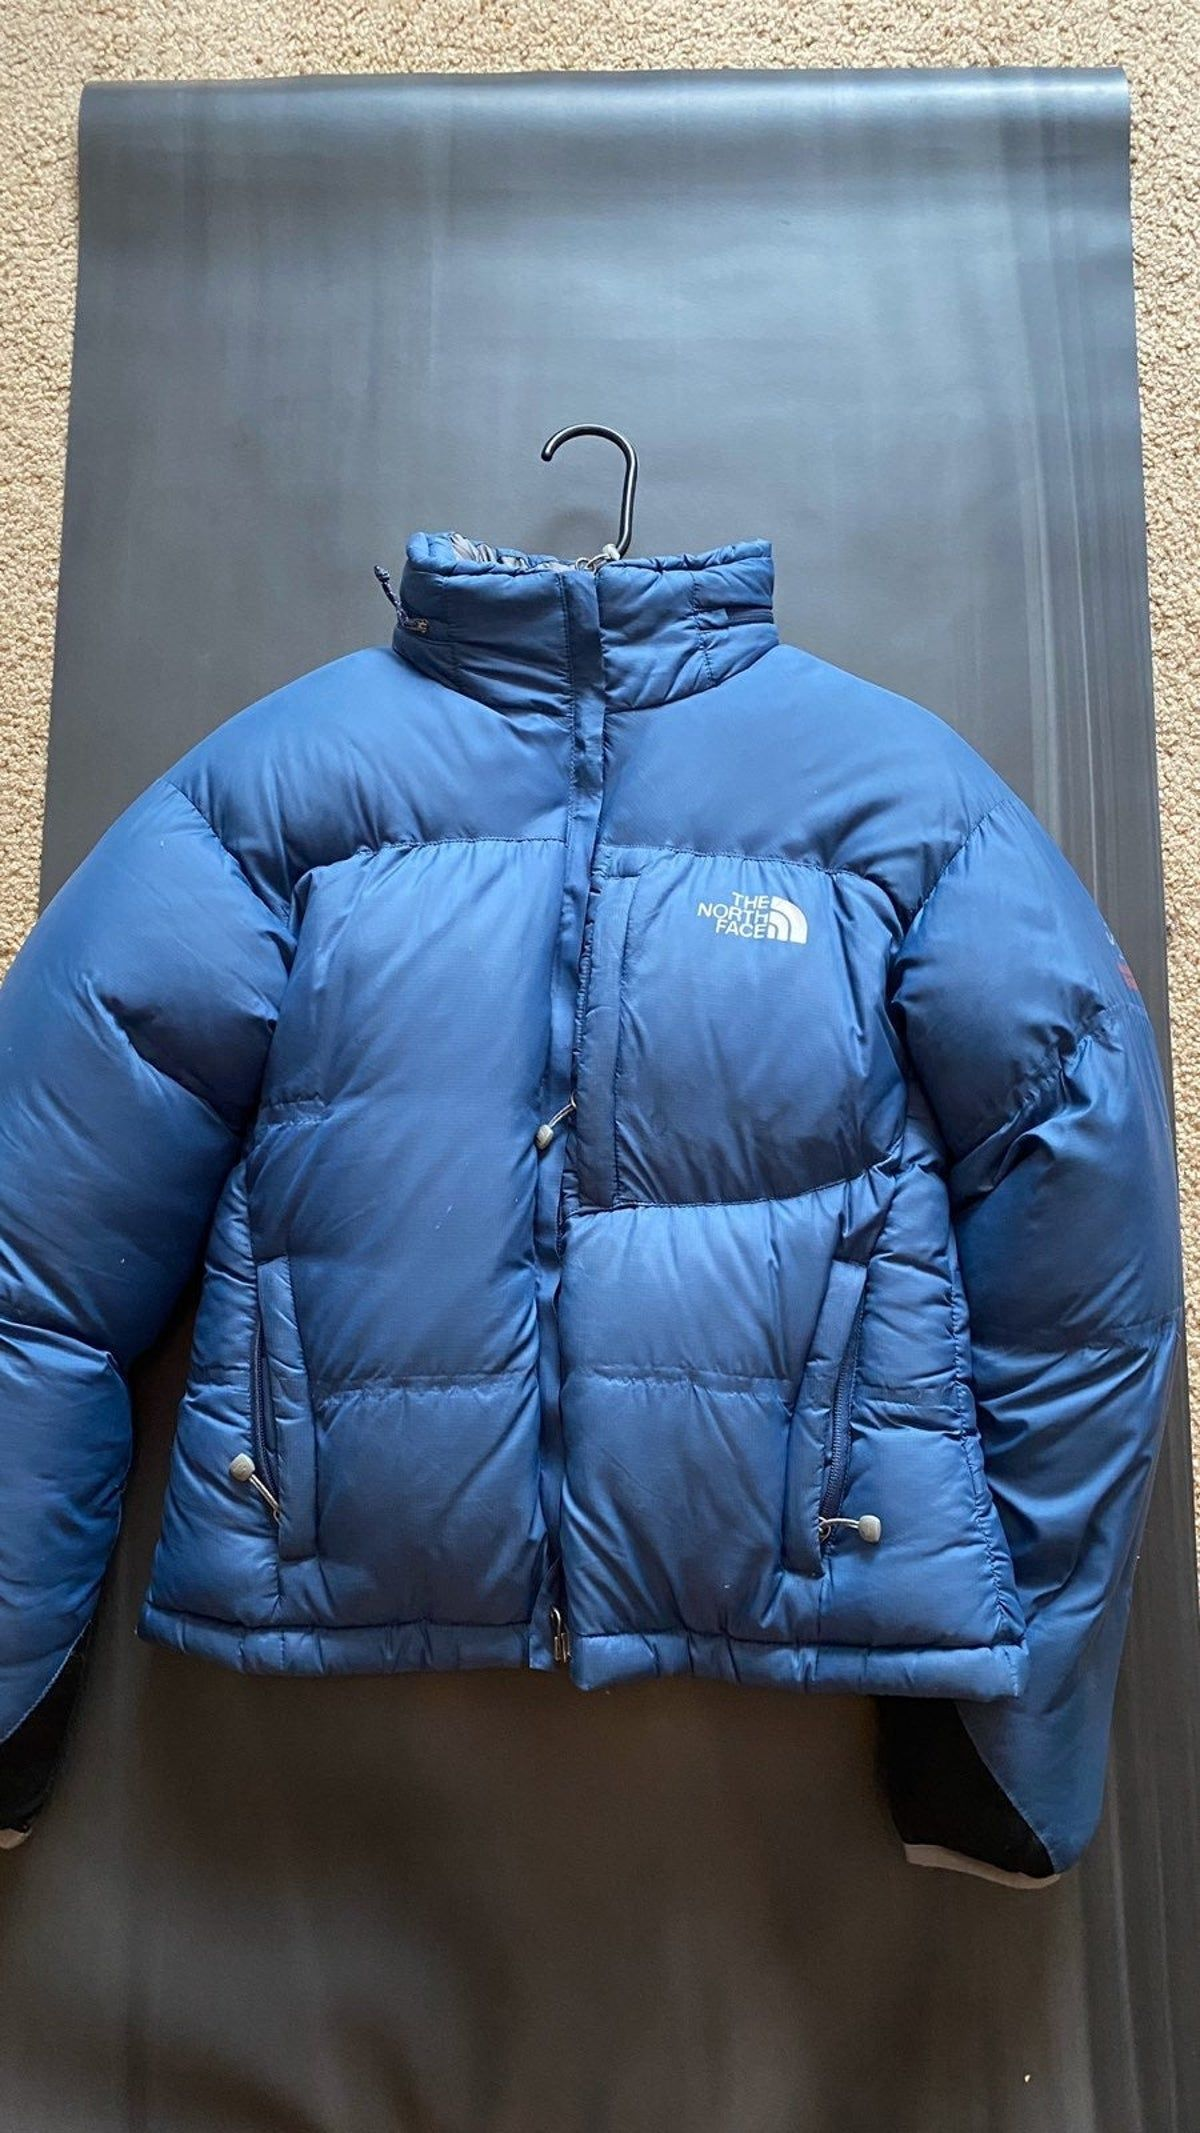 The North Face Summit Series 800 Jacket In 2021 North Face Puffer North Face Puffer Jacket Blue North Face Puffer Jacket [ 2133 x 1200 Pixel ]